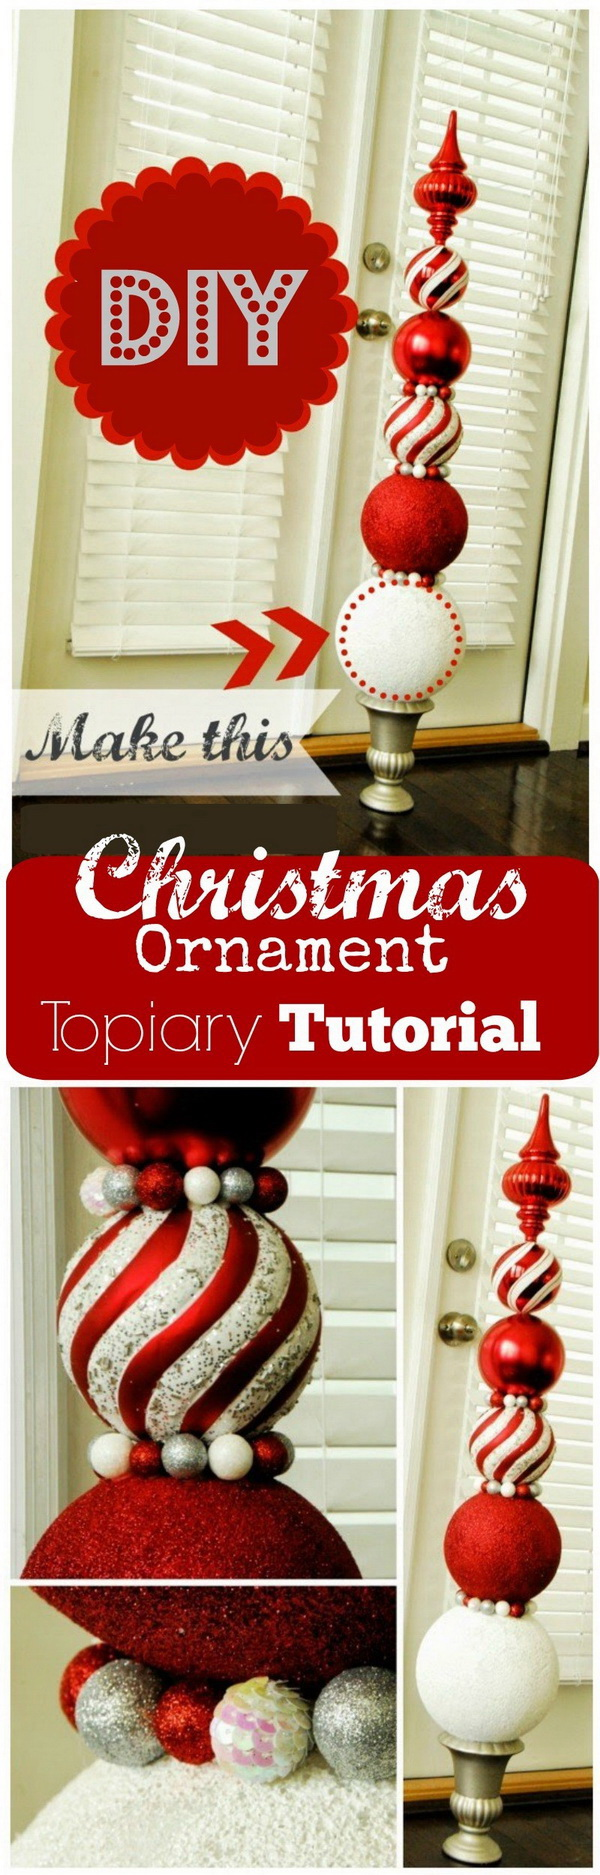 Homemade Projects & Ideas for Christmas Decoration: DIY Ornament Topiaries.